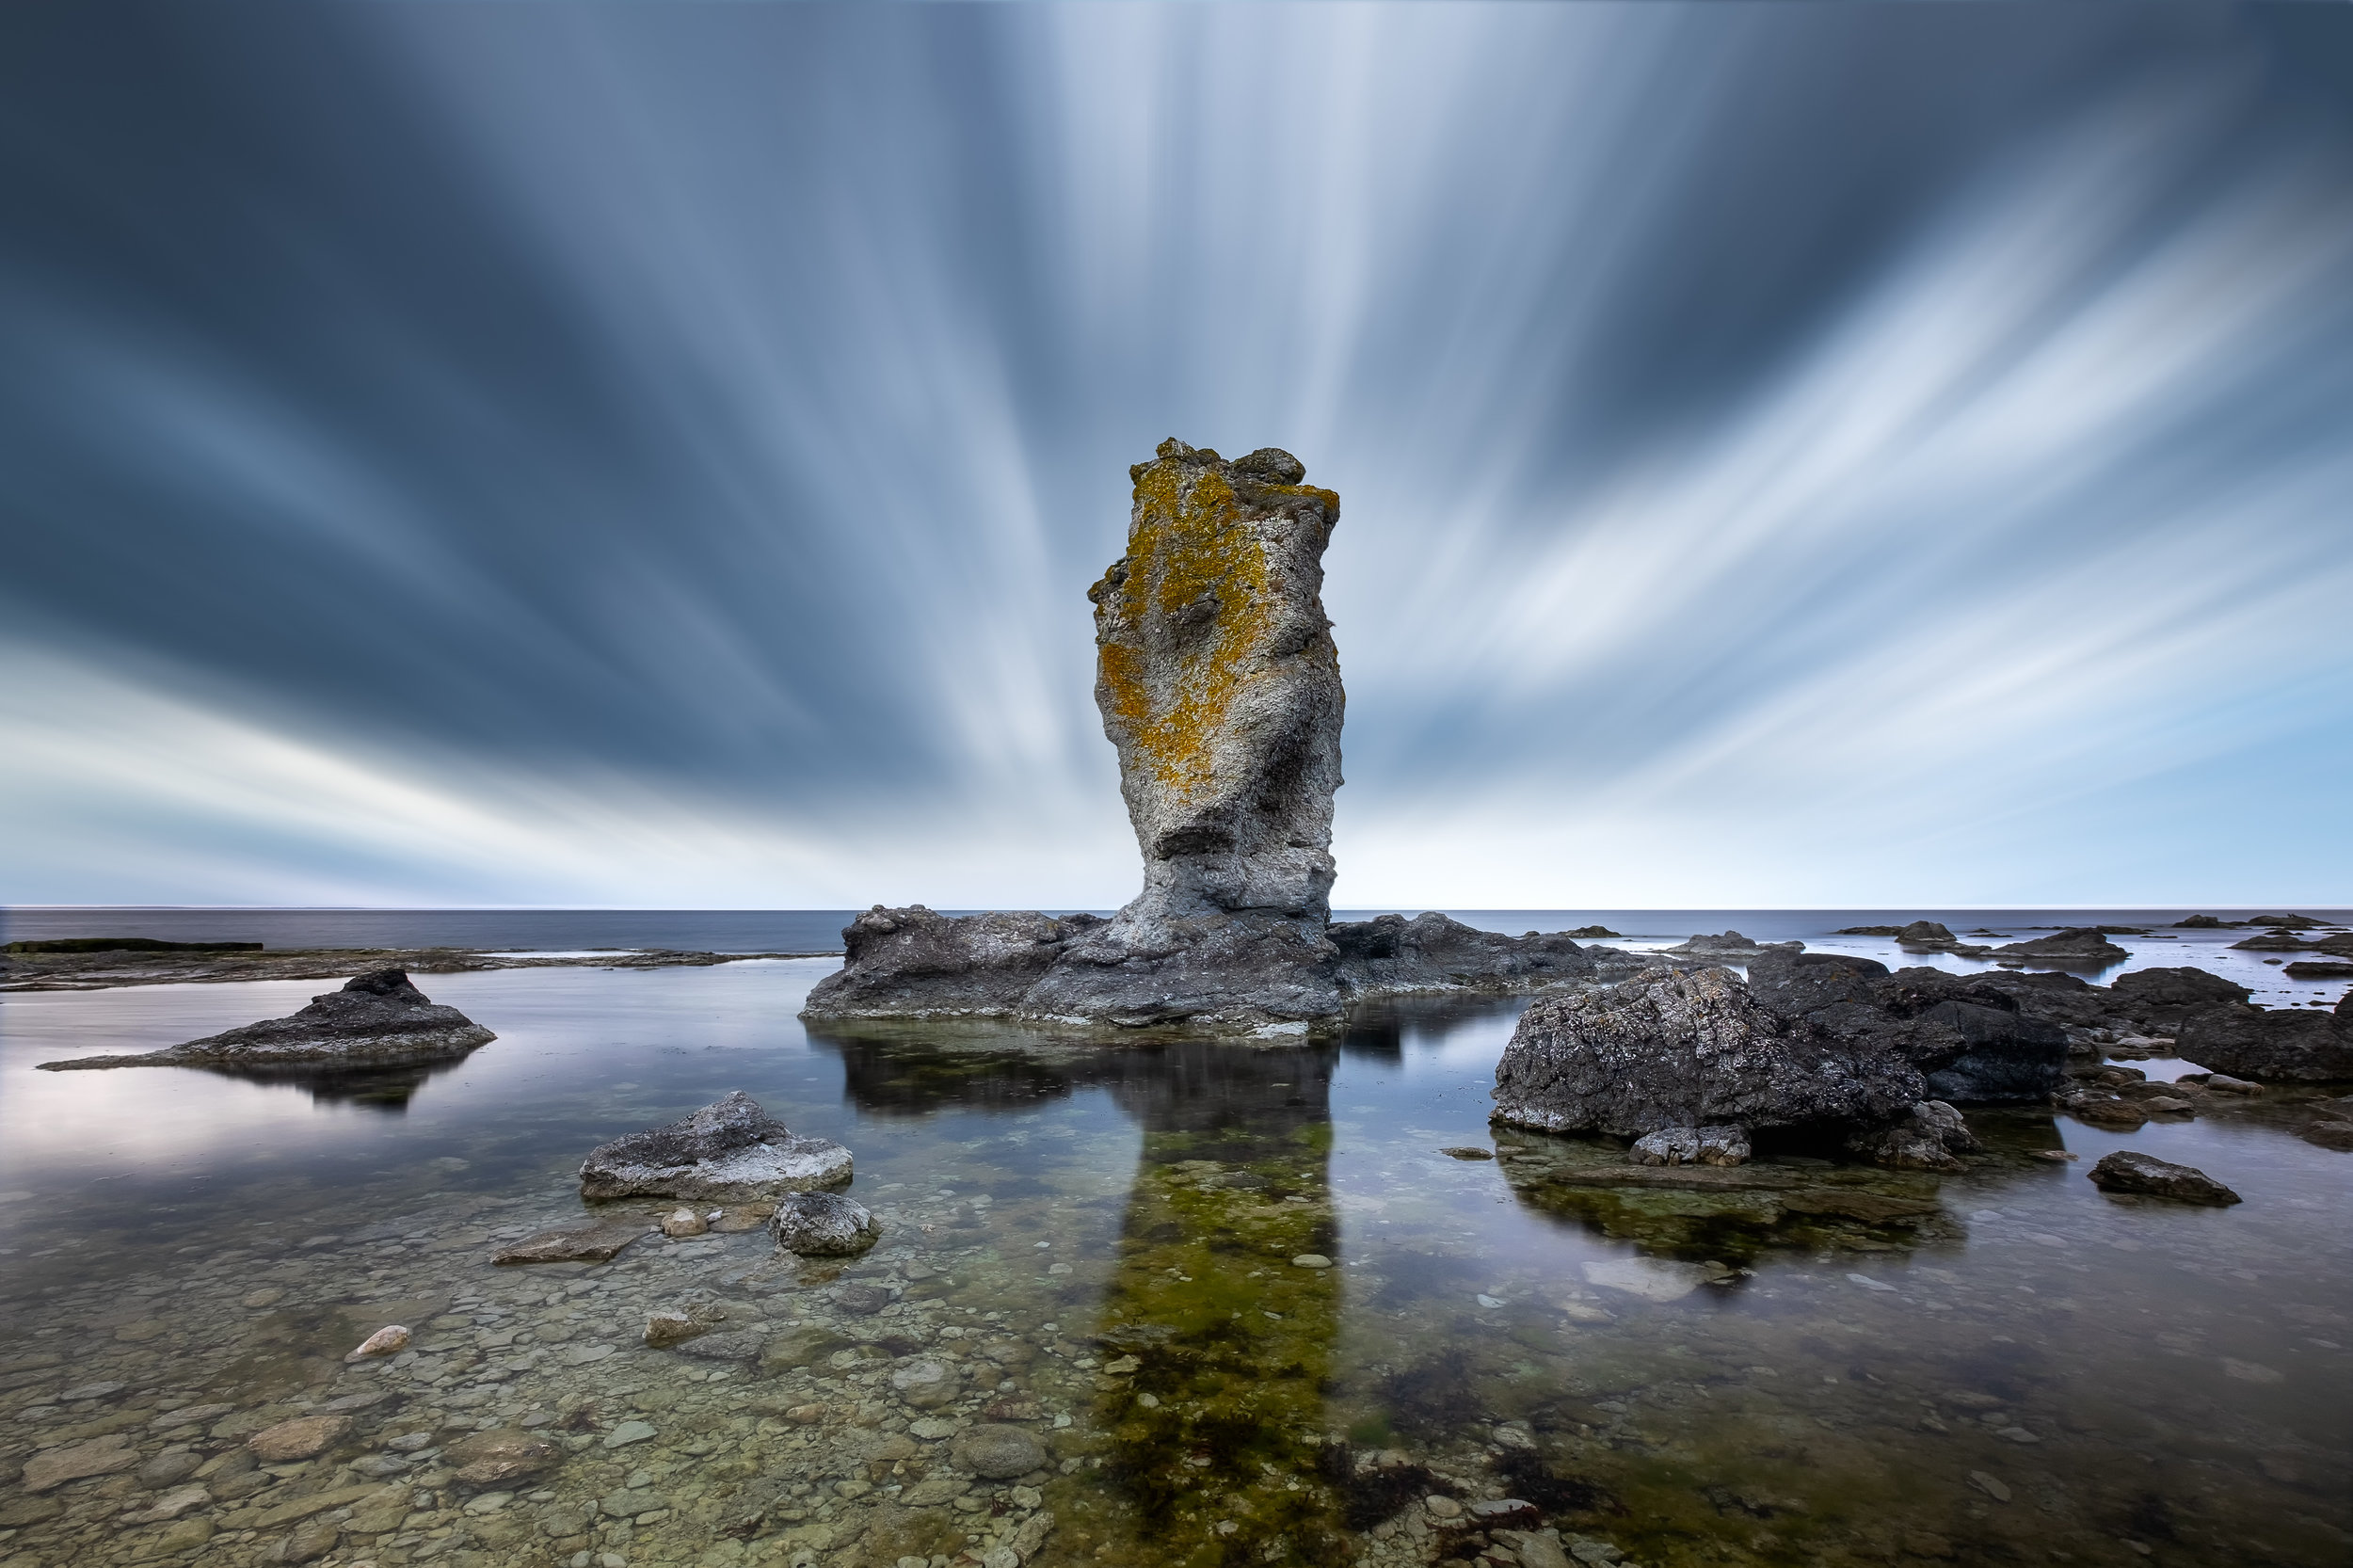 Sea stack photographed at Digerhuvud Nature reserve